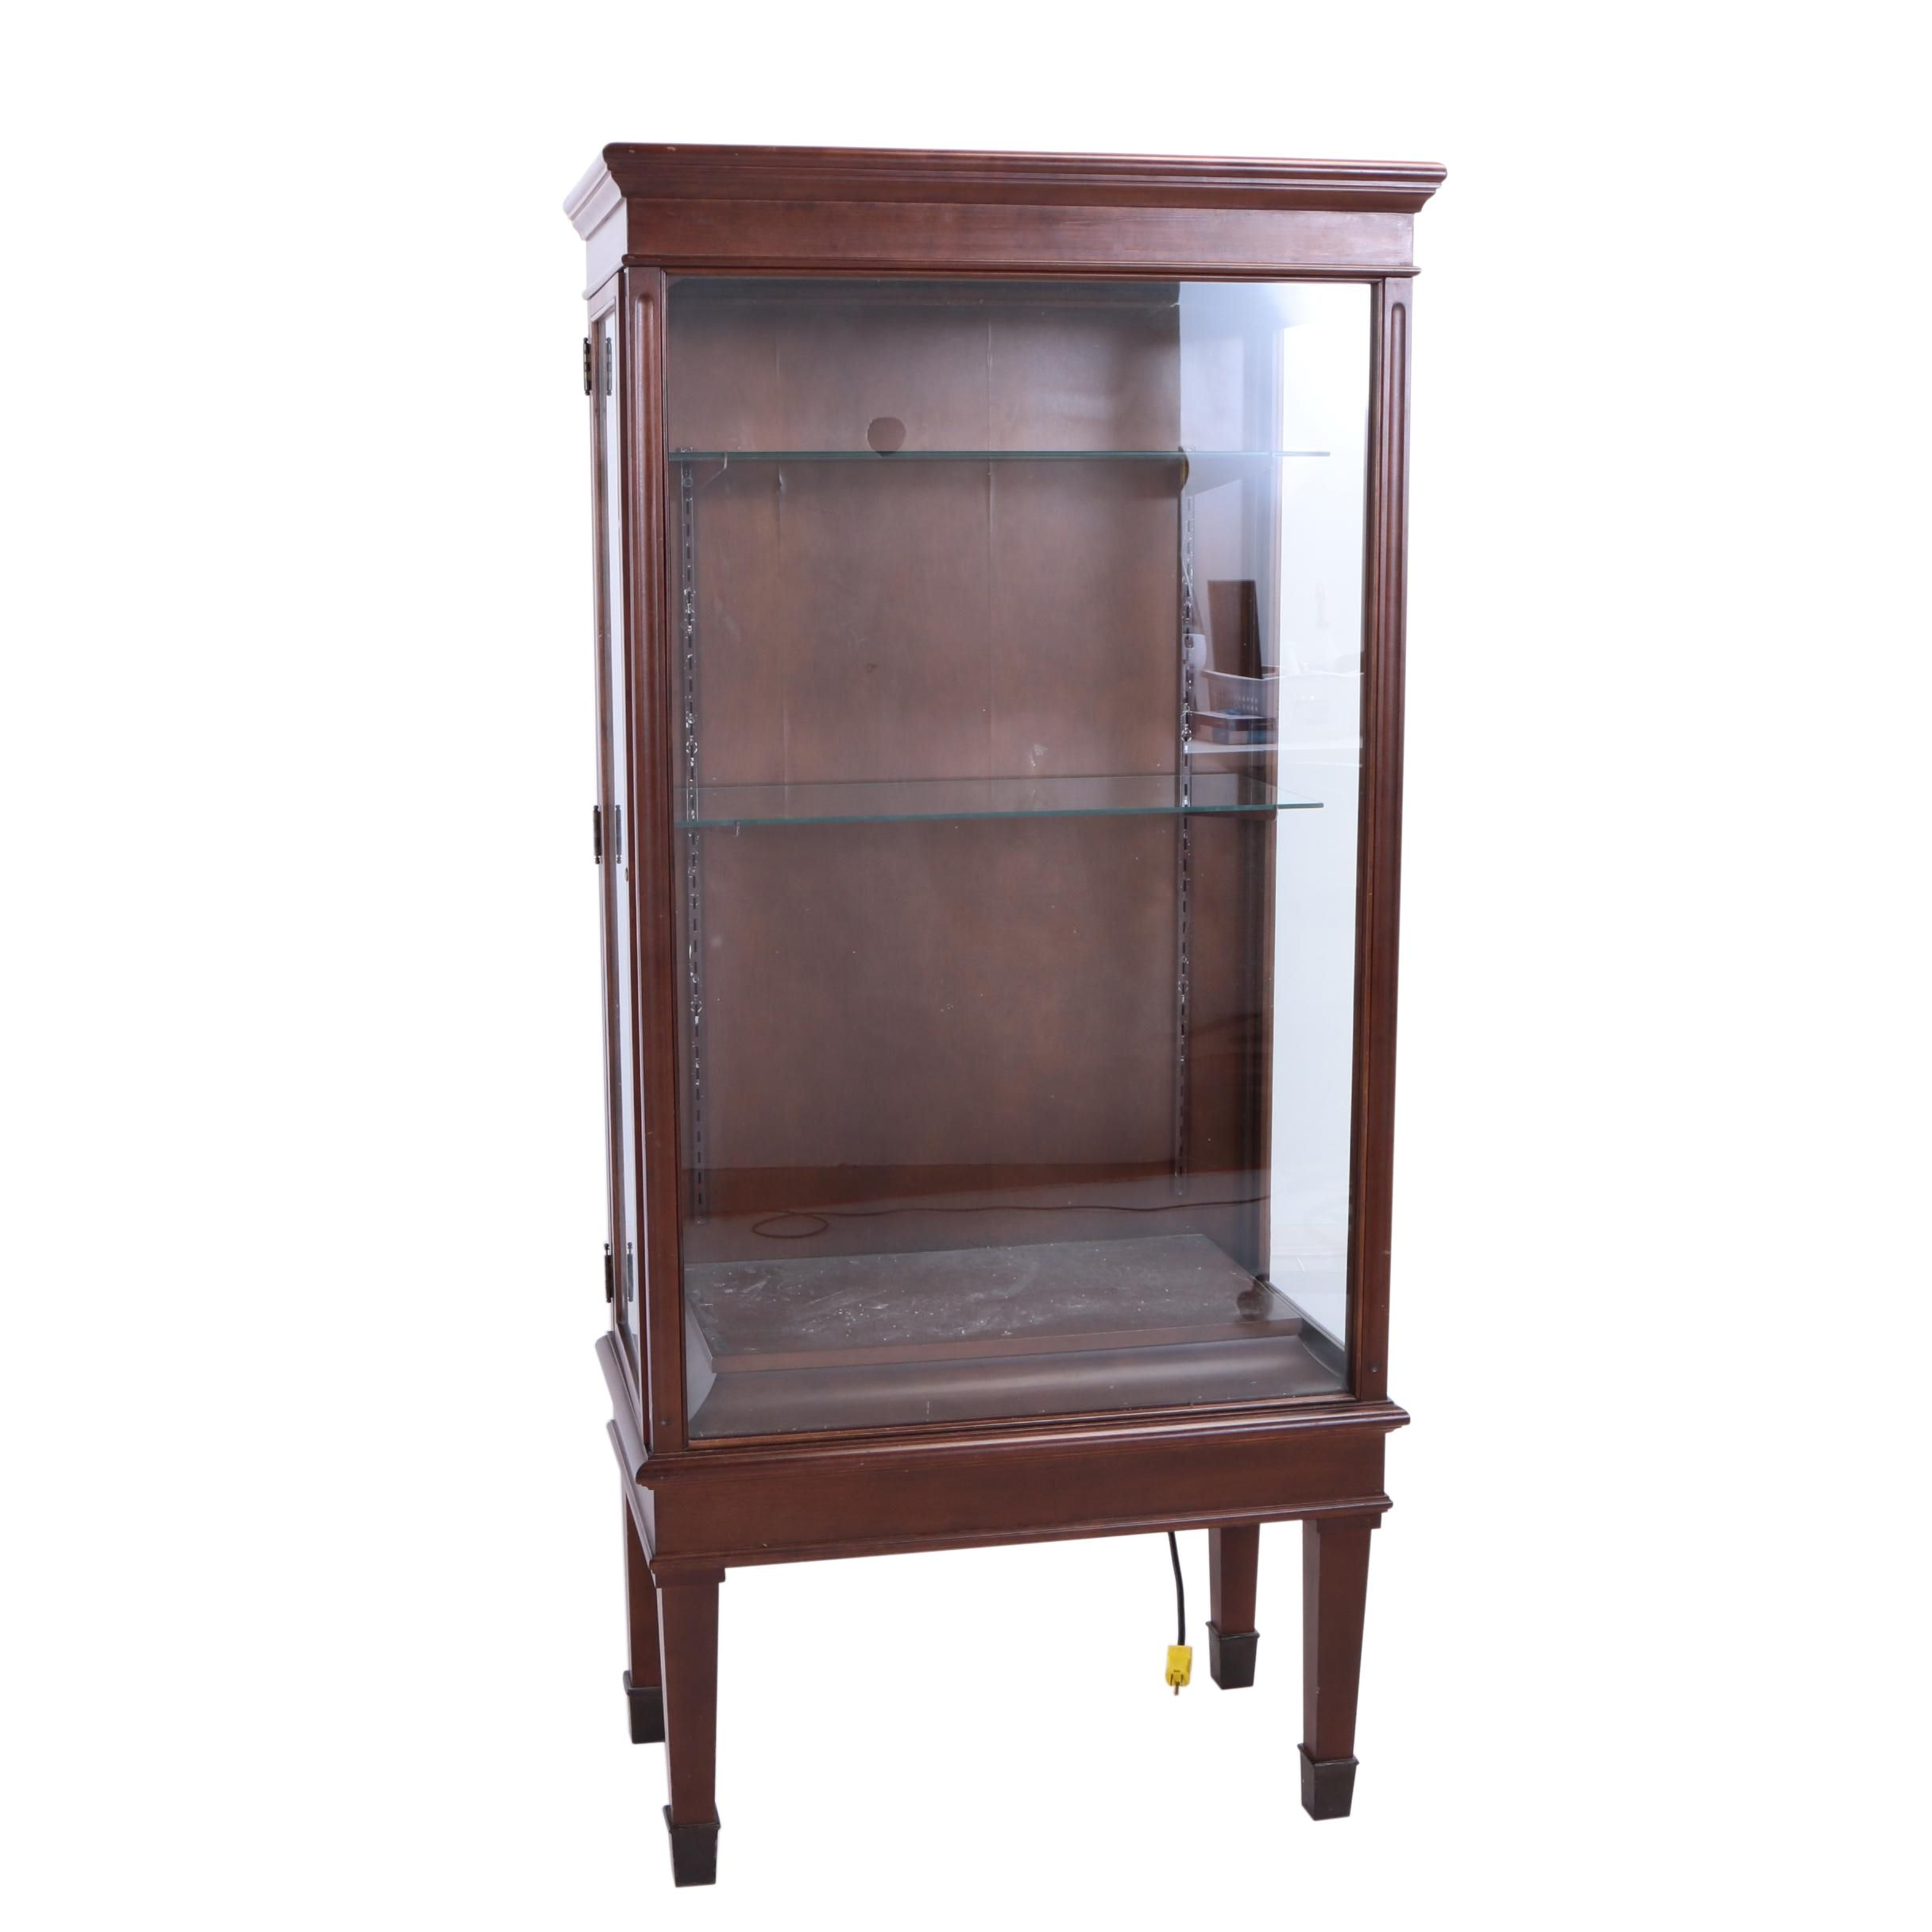 Mahogany-Stained Display Cabinet, 20th Century